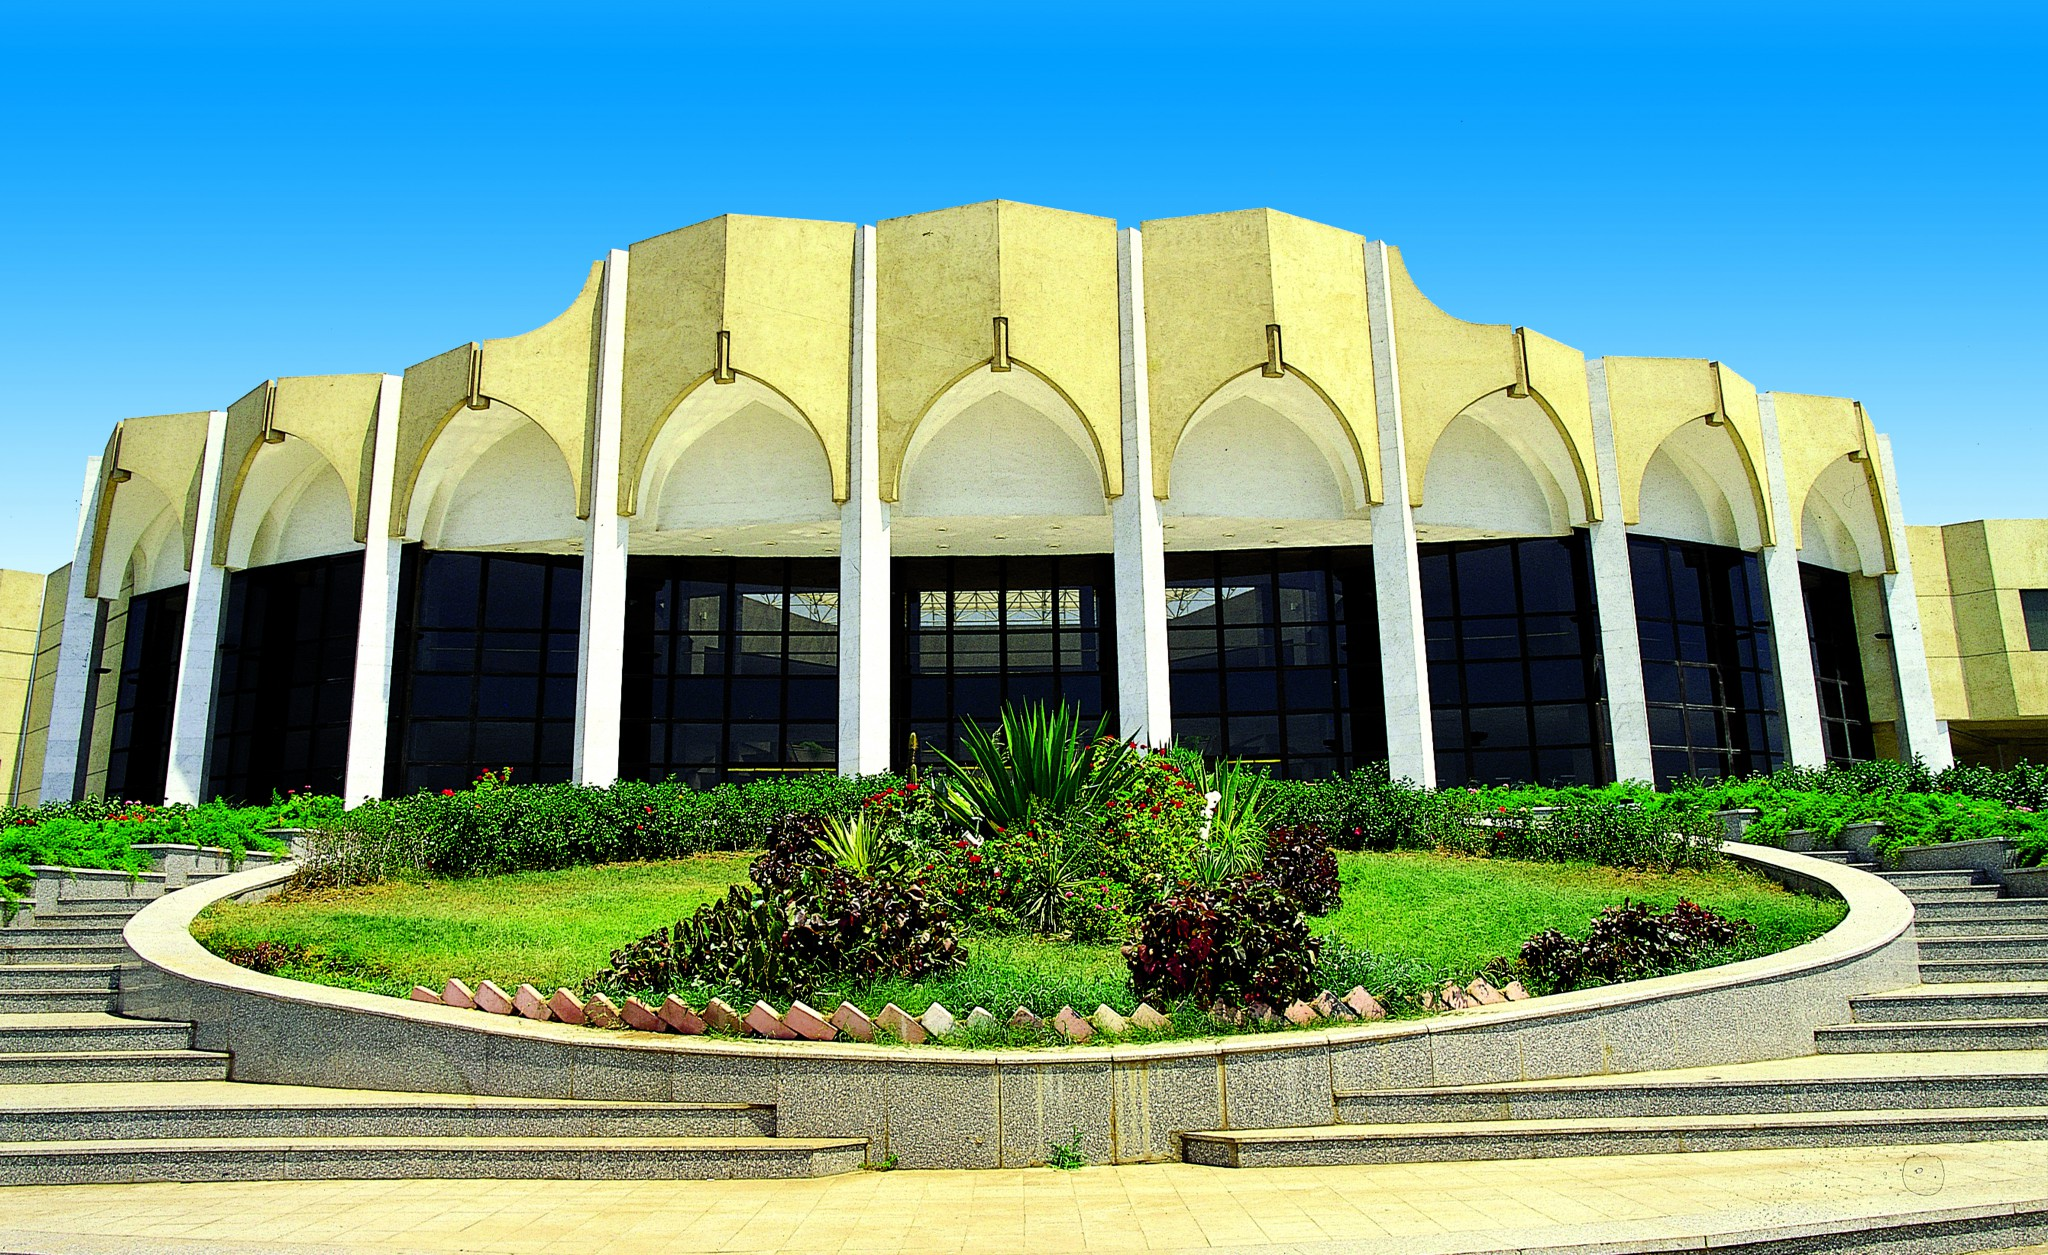 The Cairo International Conferences Center